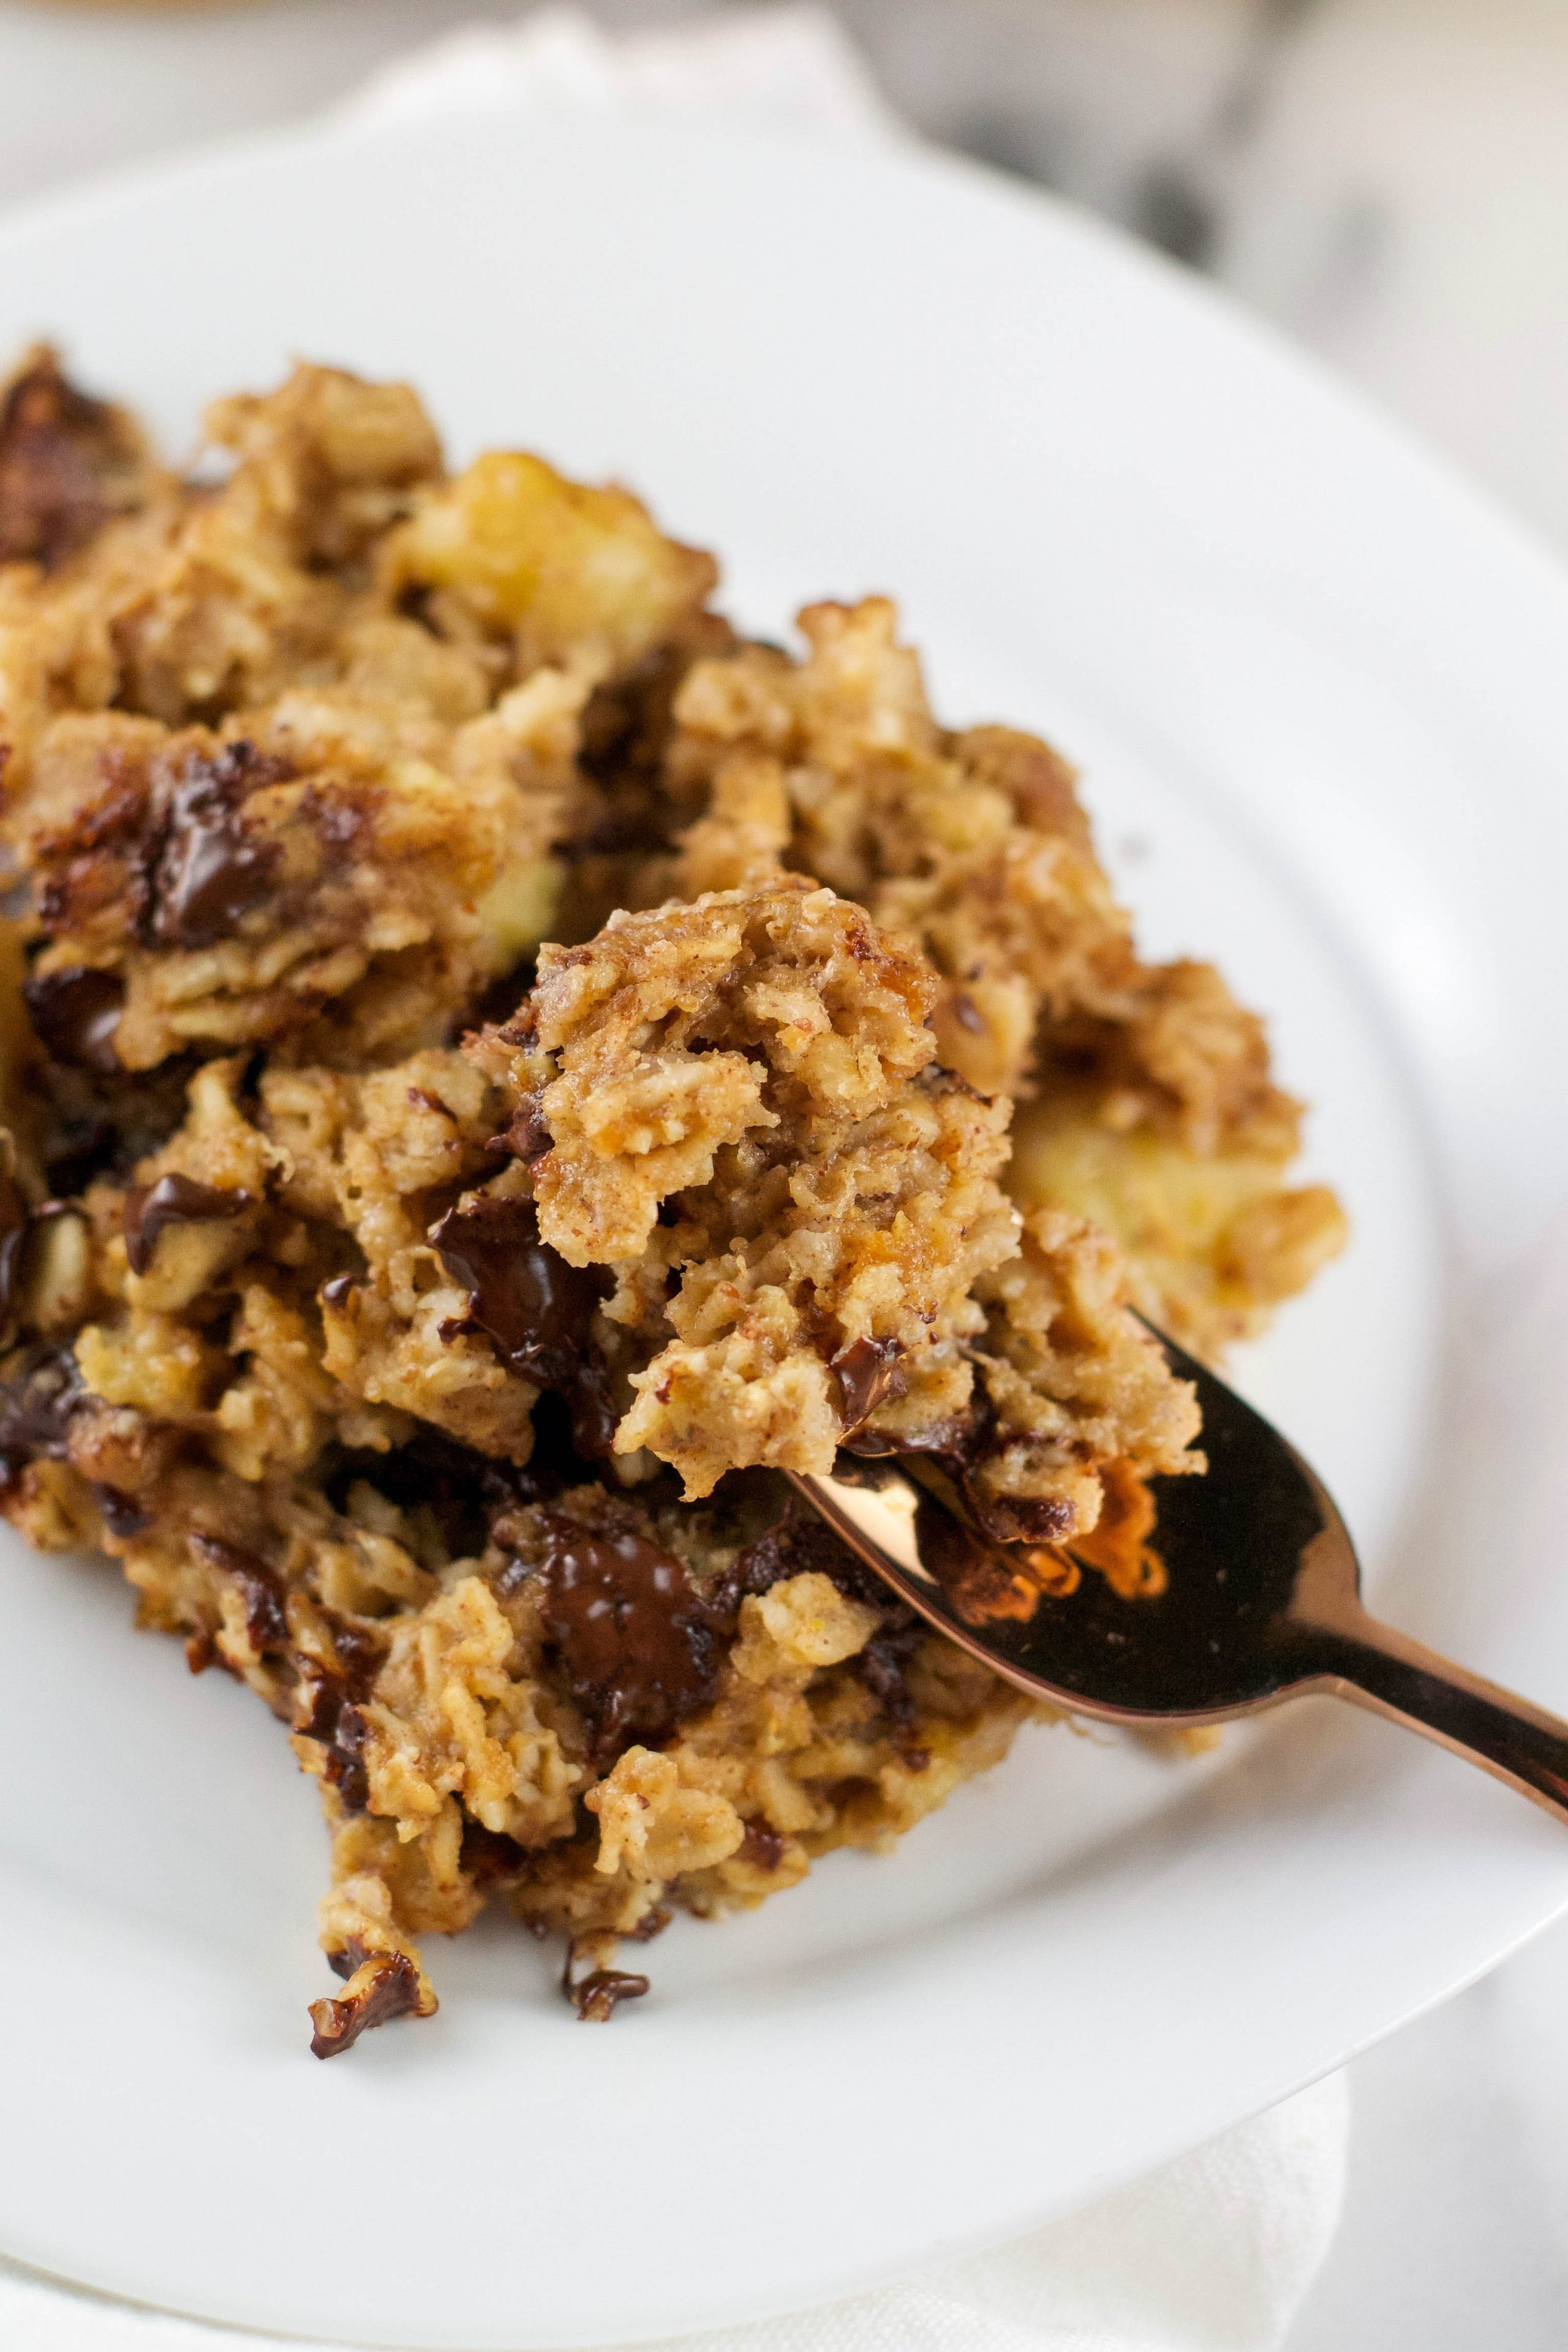 Slow Cooker Chocolate Peanut Butter Banana Oatmeal Bake (GF, DF, V) - A Dash of Megnut